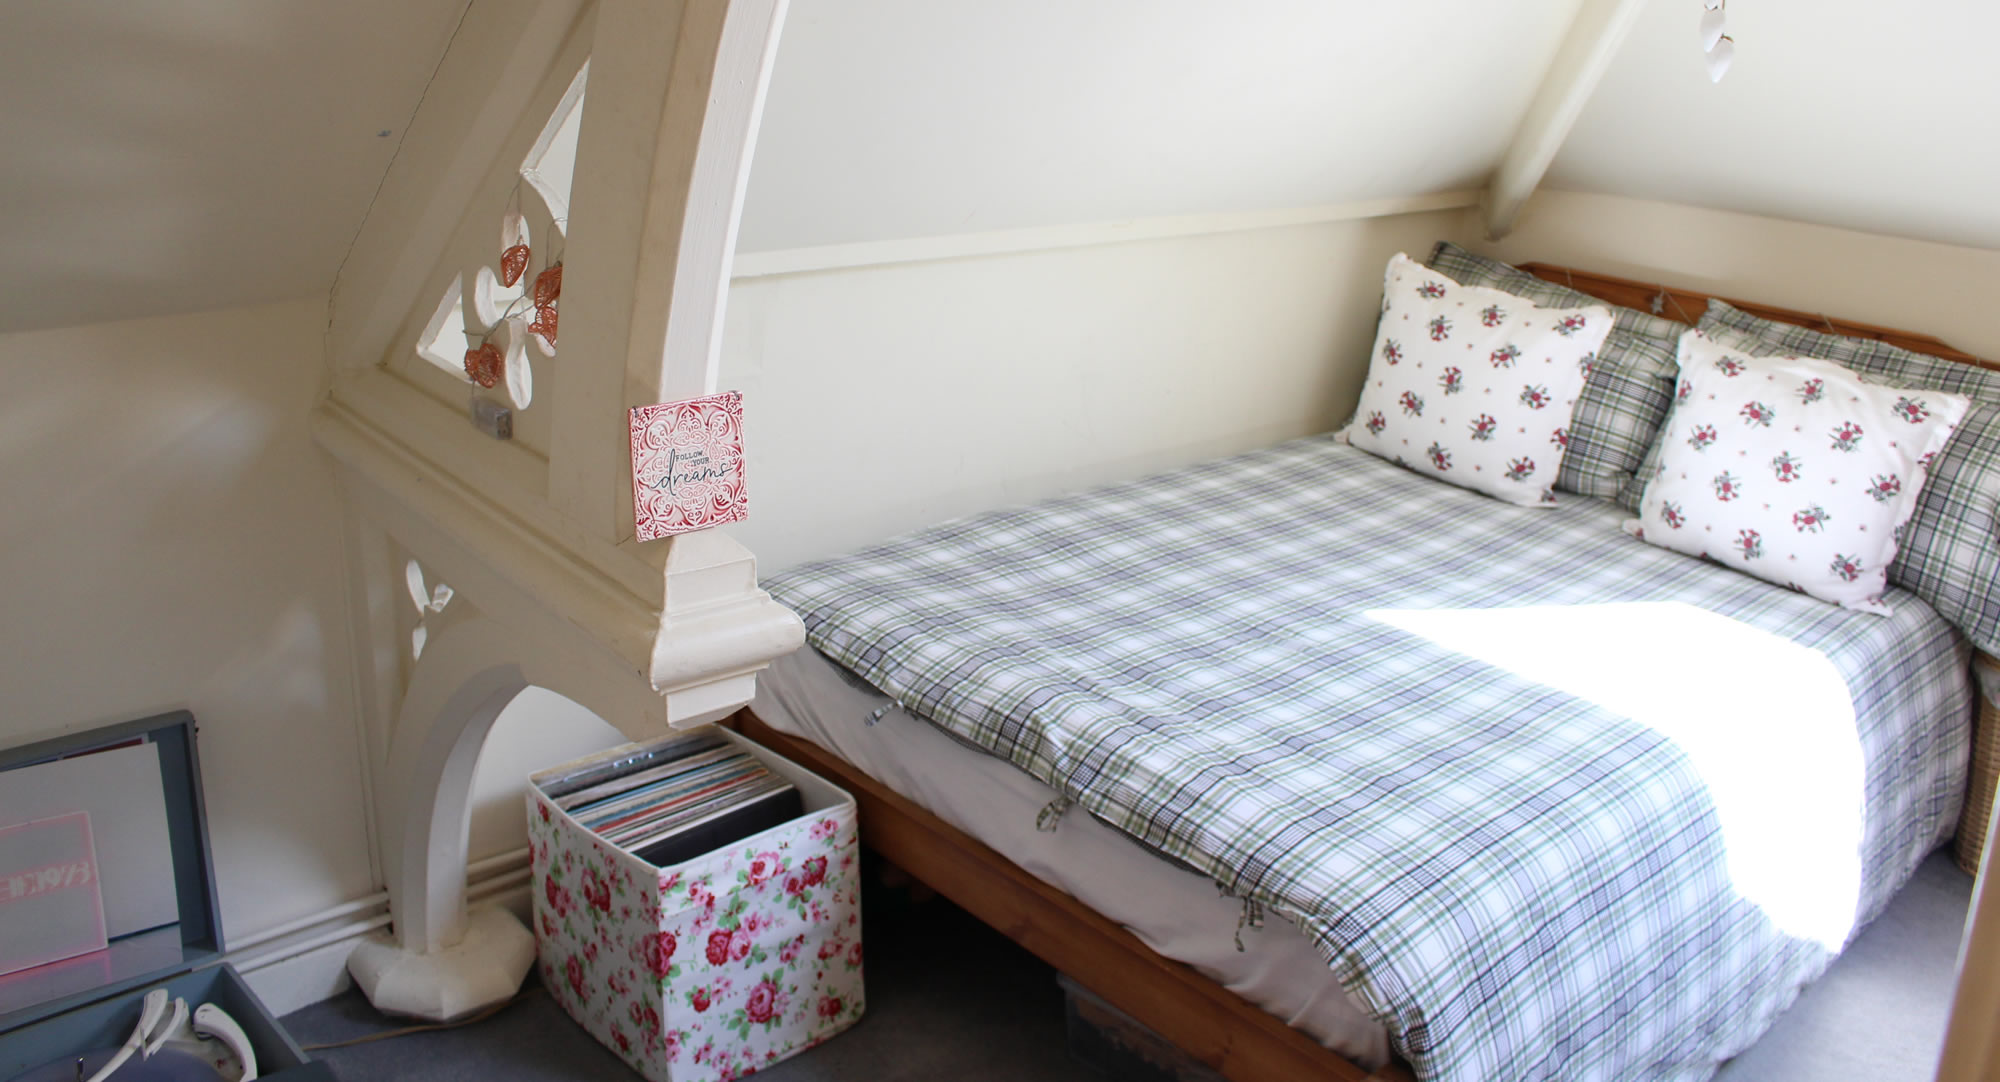 Double Beds in every bedroom